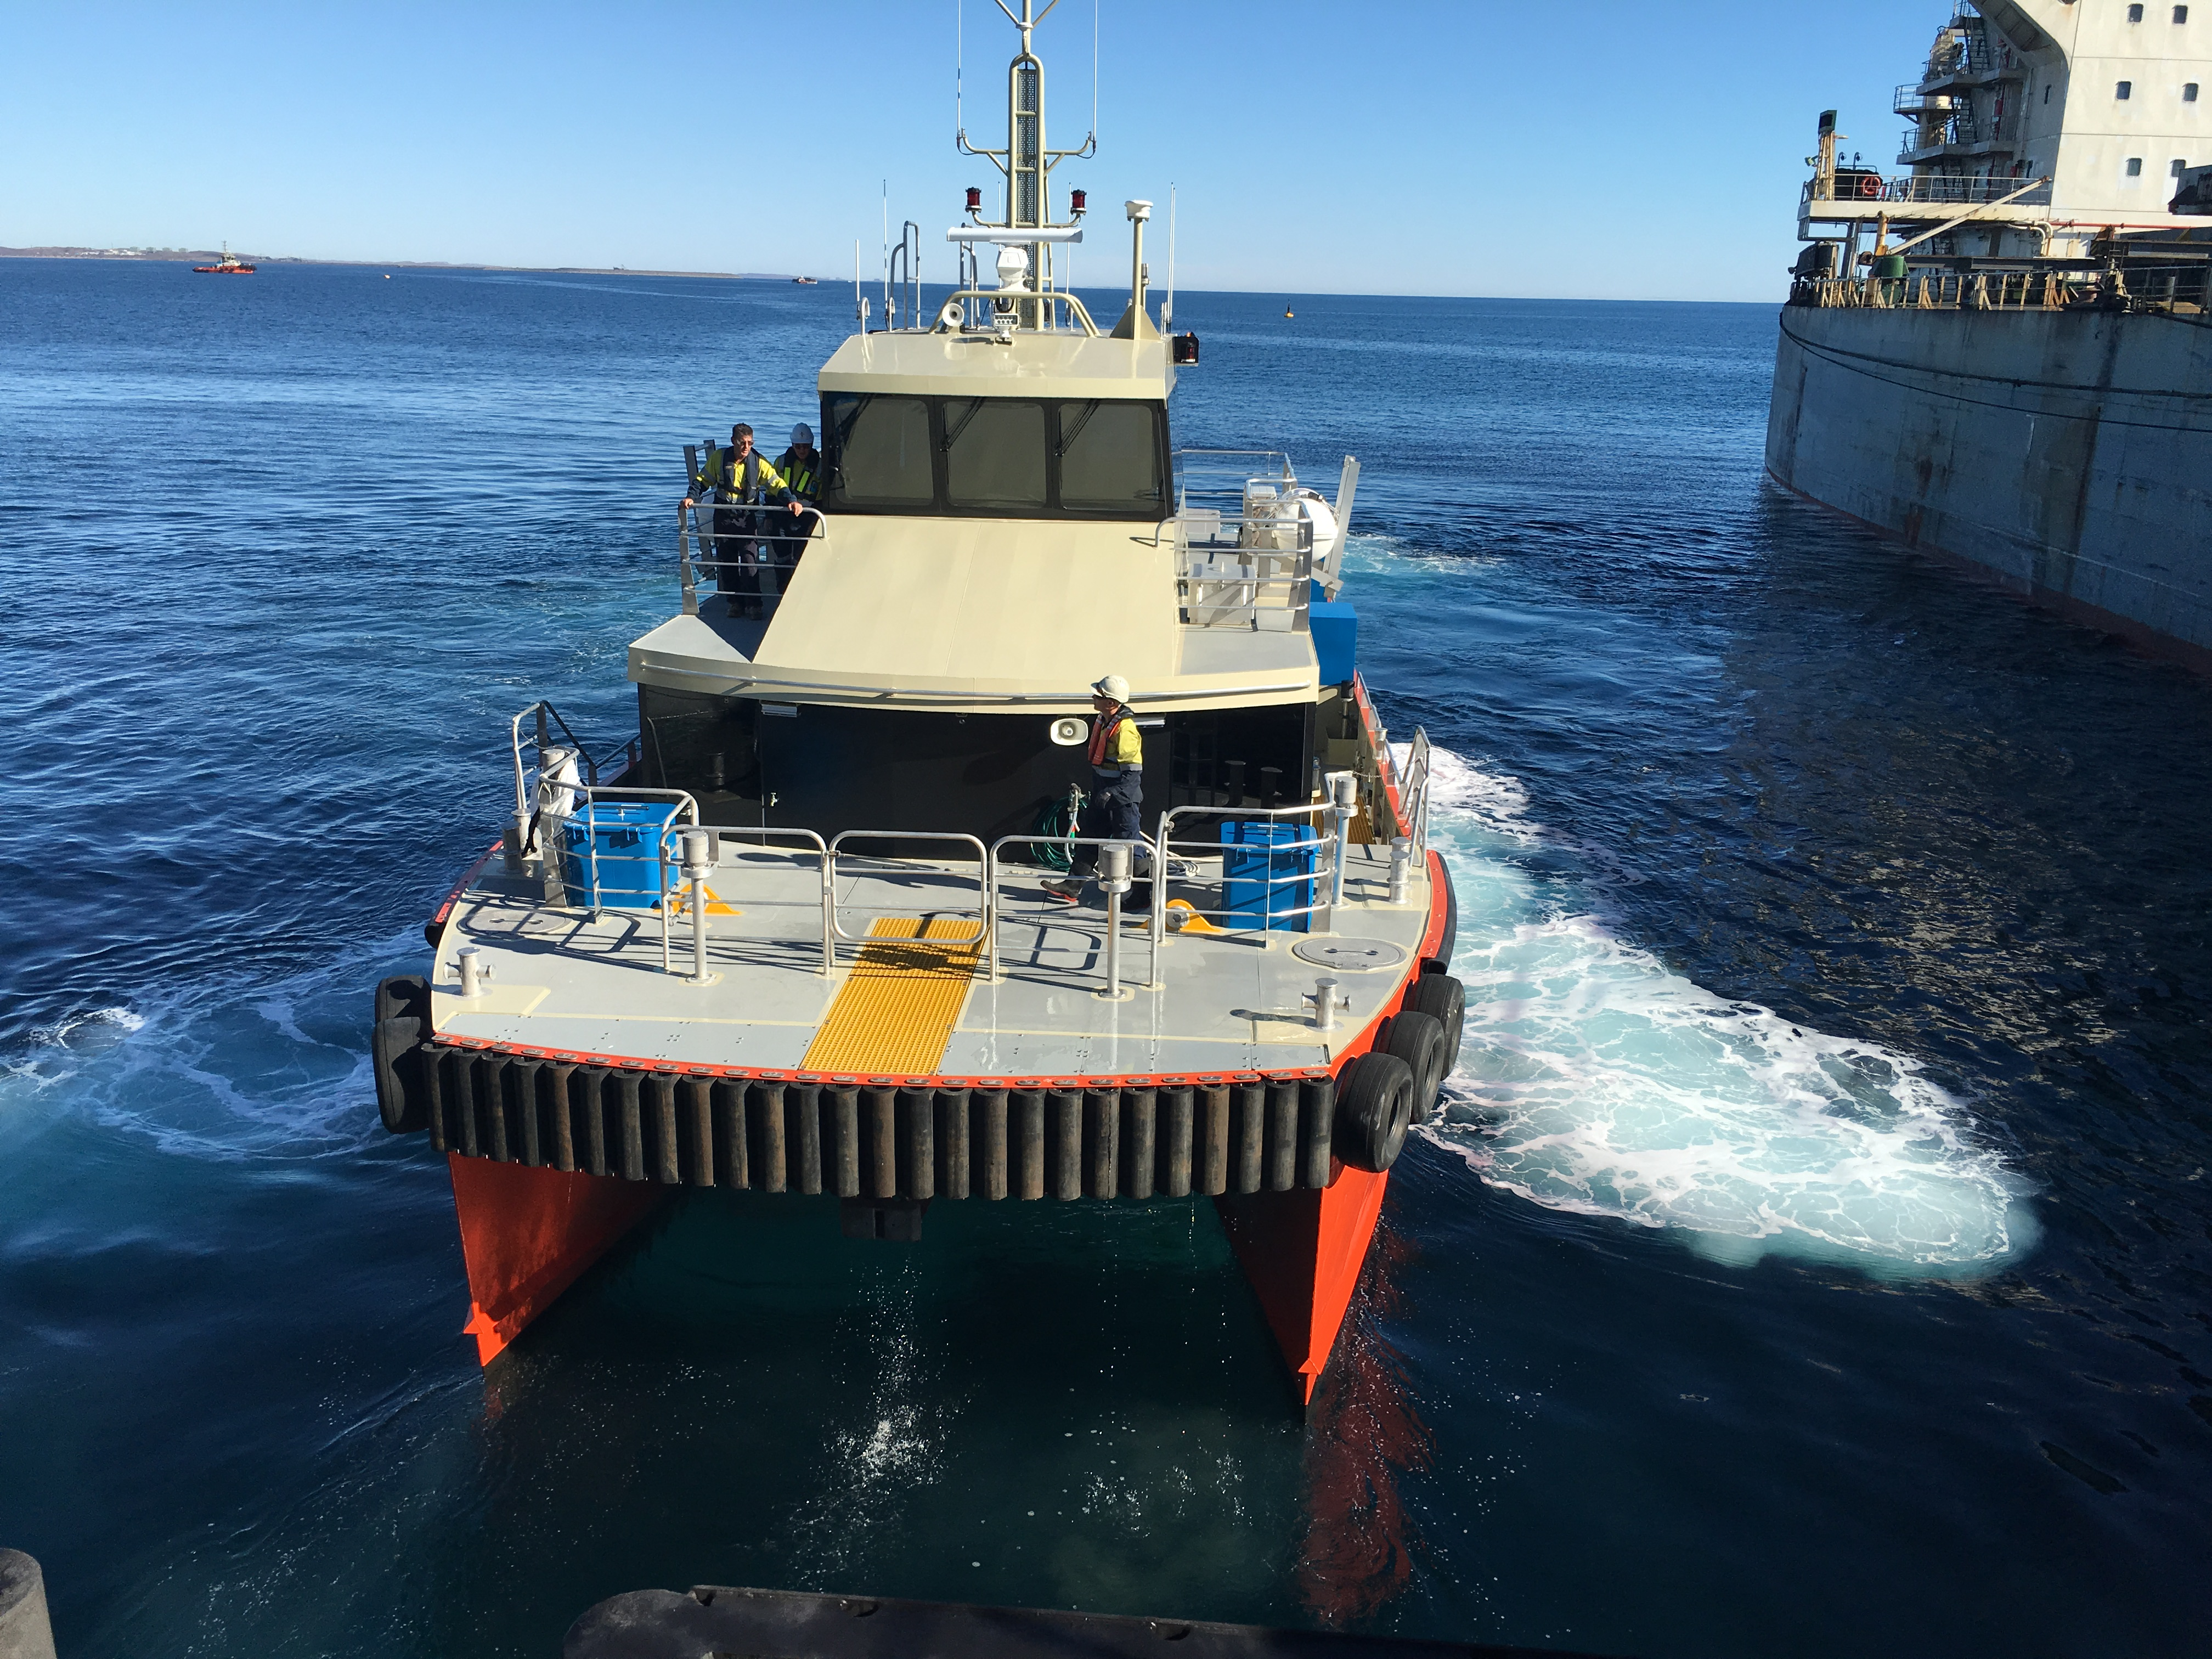 Image - the new crew transfer and pilot vessel, Ardea, pictured in the waters of Cape Preston Port